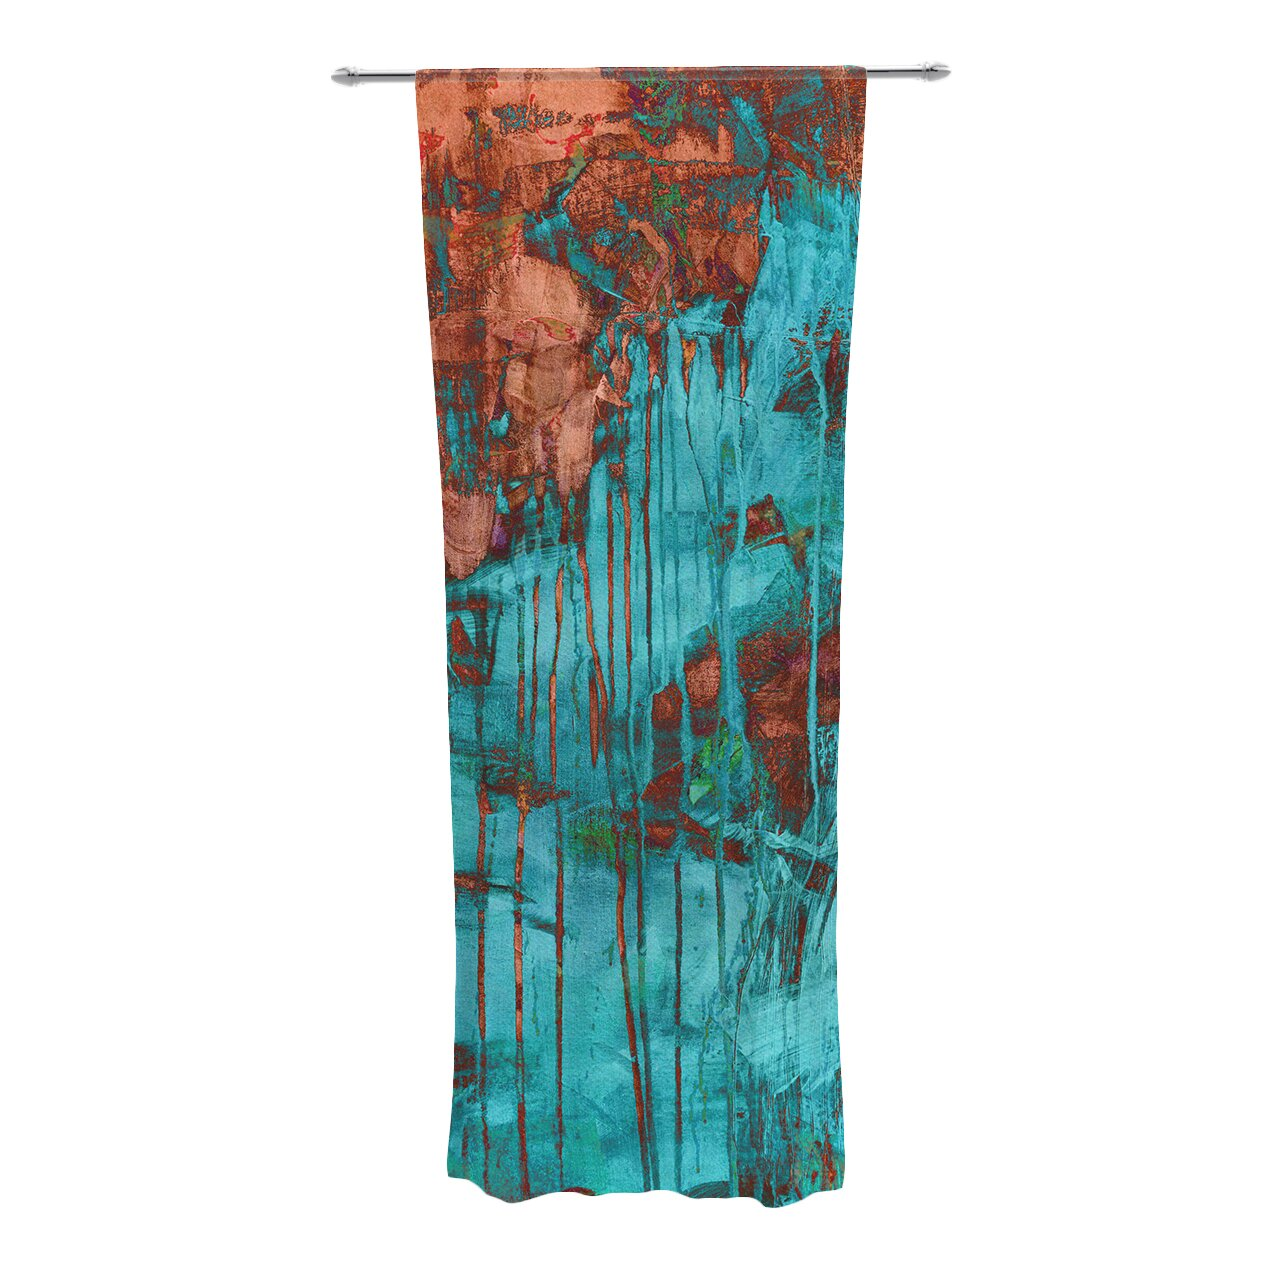 Rusty Teal Curtain Panels by KESS InHouse